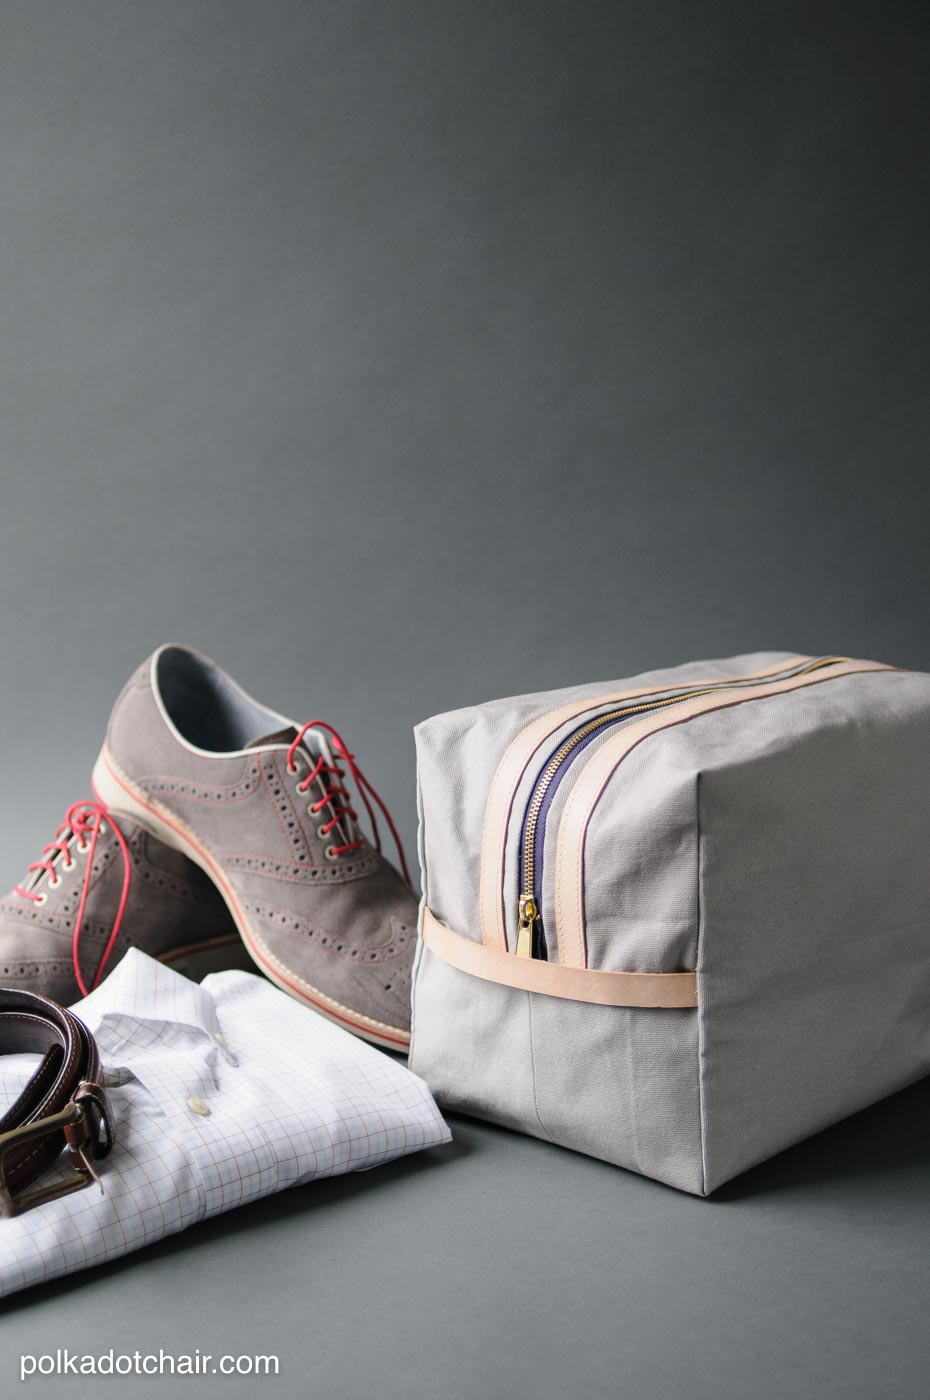 Sewing Pattern and Tutorial for a Canvas Dopp Kit, it even has a bit of leather.. makes a great gift